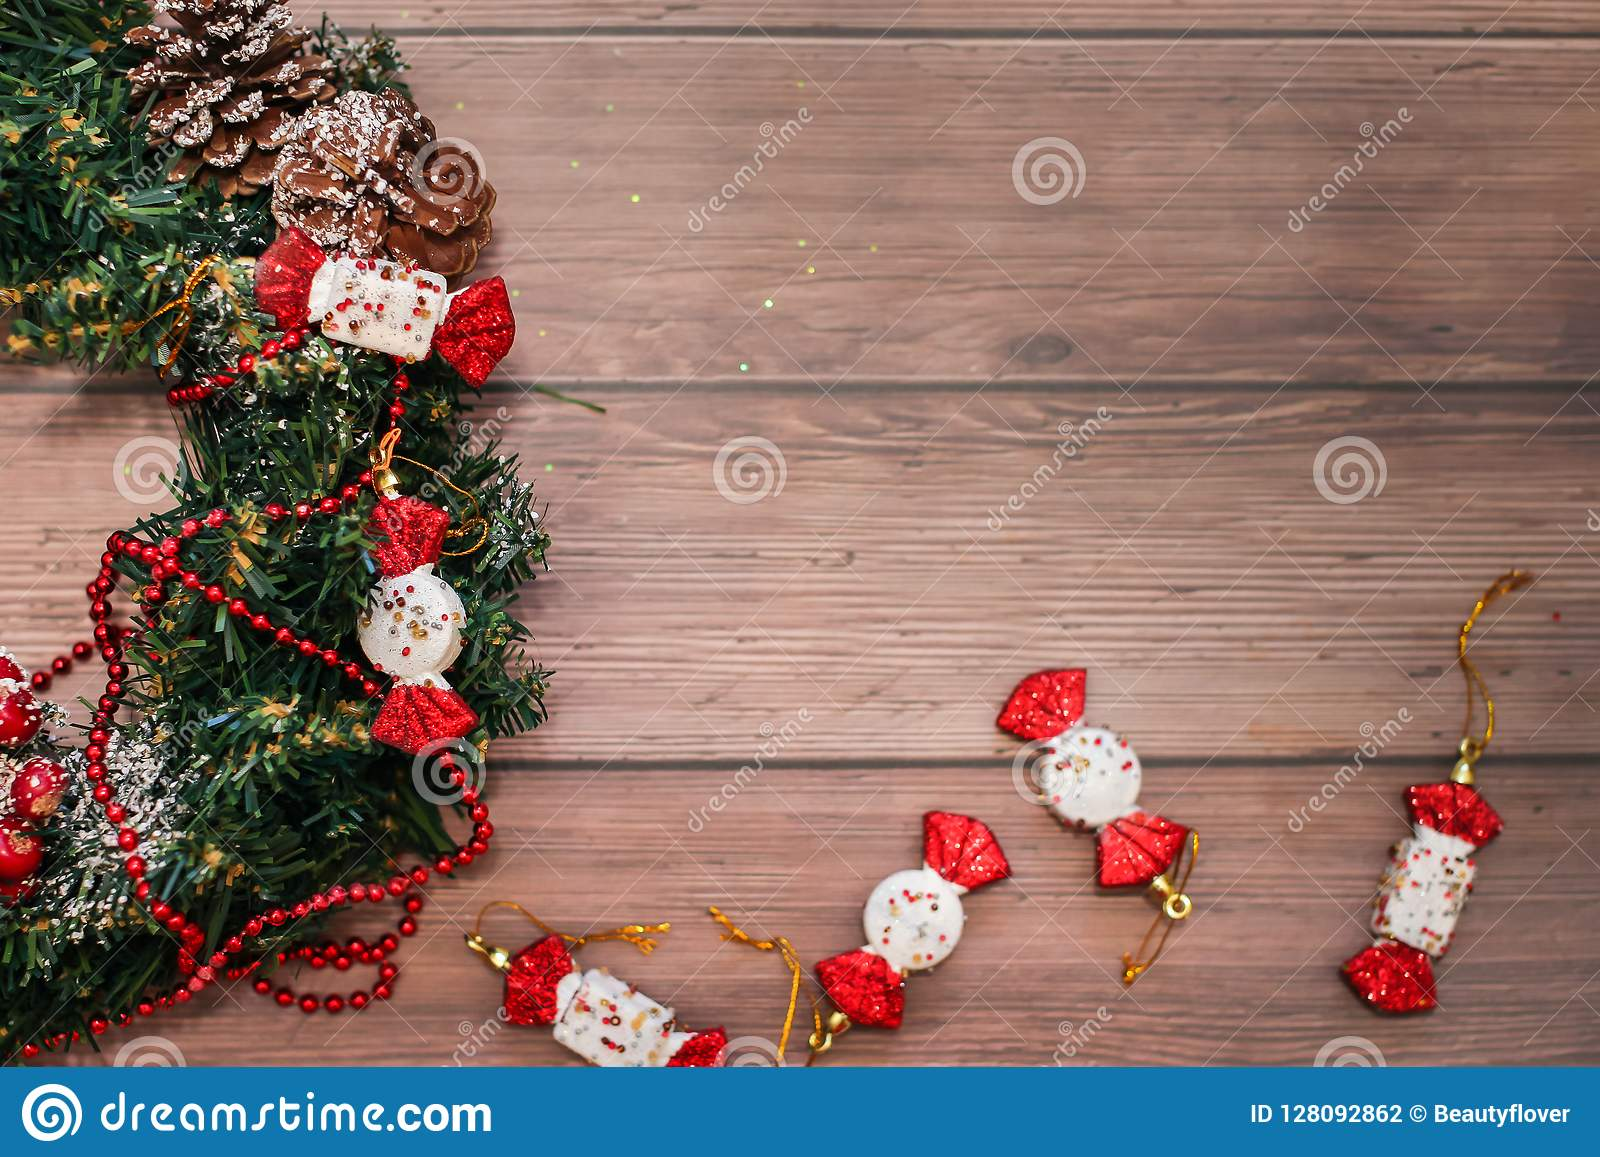 Flat lay of Christmas wreath with bumps and red decor on wooden table. Holidays christmas and new year background